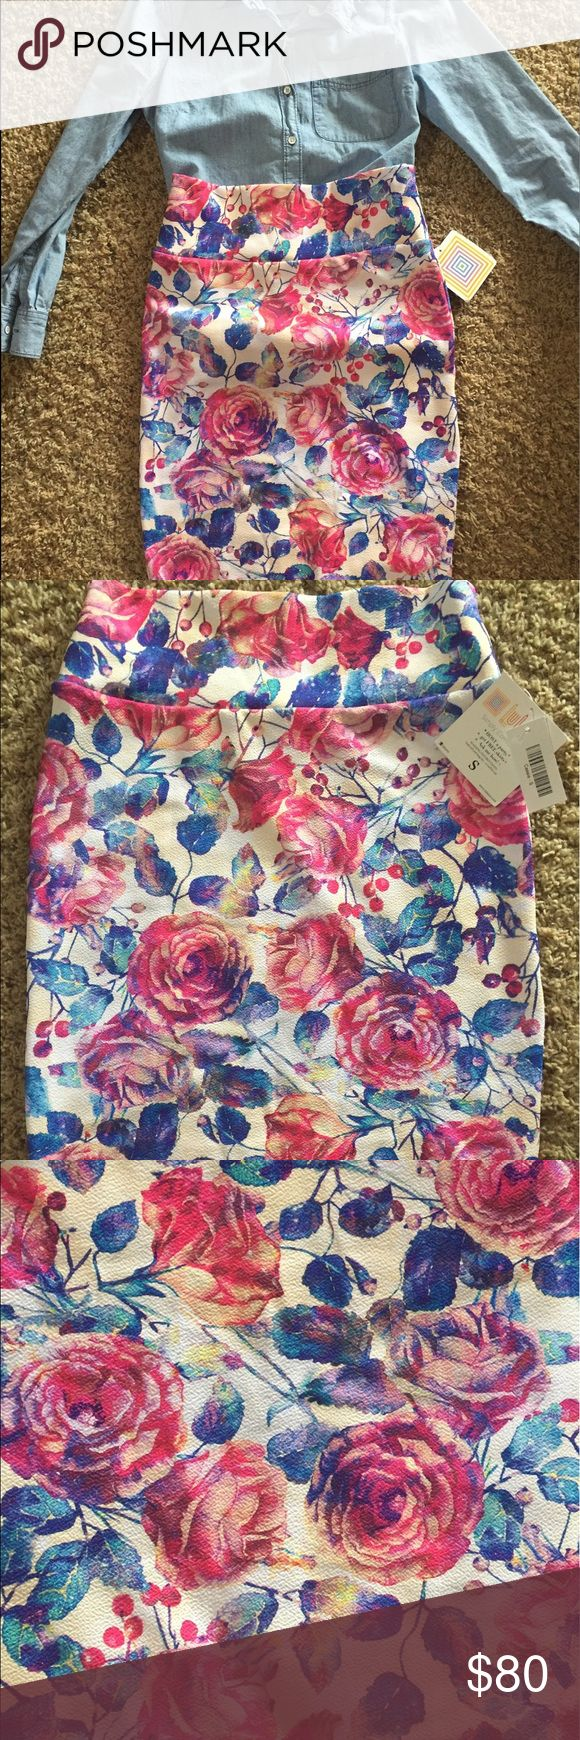 LuLaRoe Unicorn Cassie! NWT NWT! Blue and pink watercolor floral print with white and cream background. All reasonable offers considered! LuLaRoe Skirts Pencil